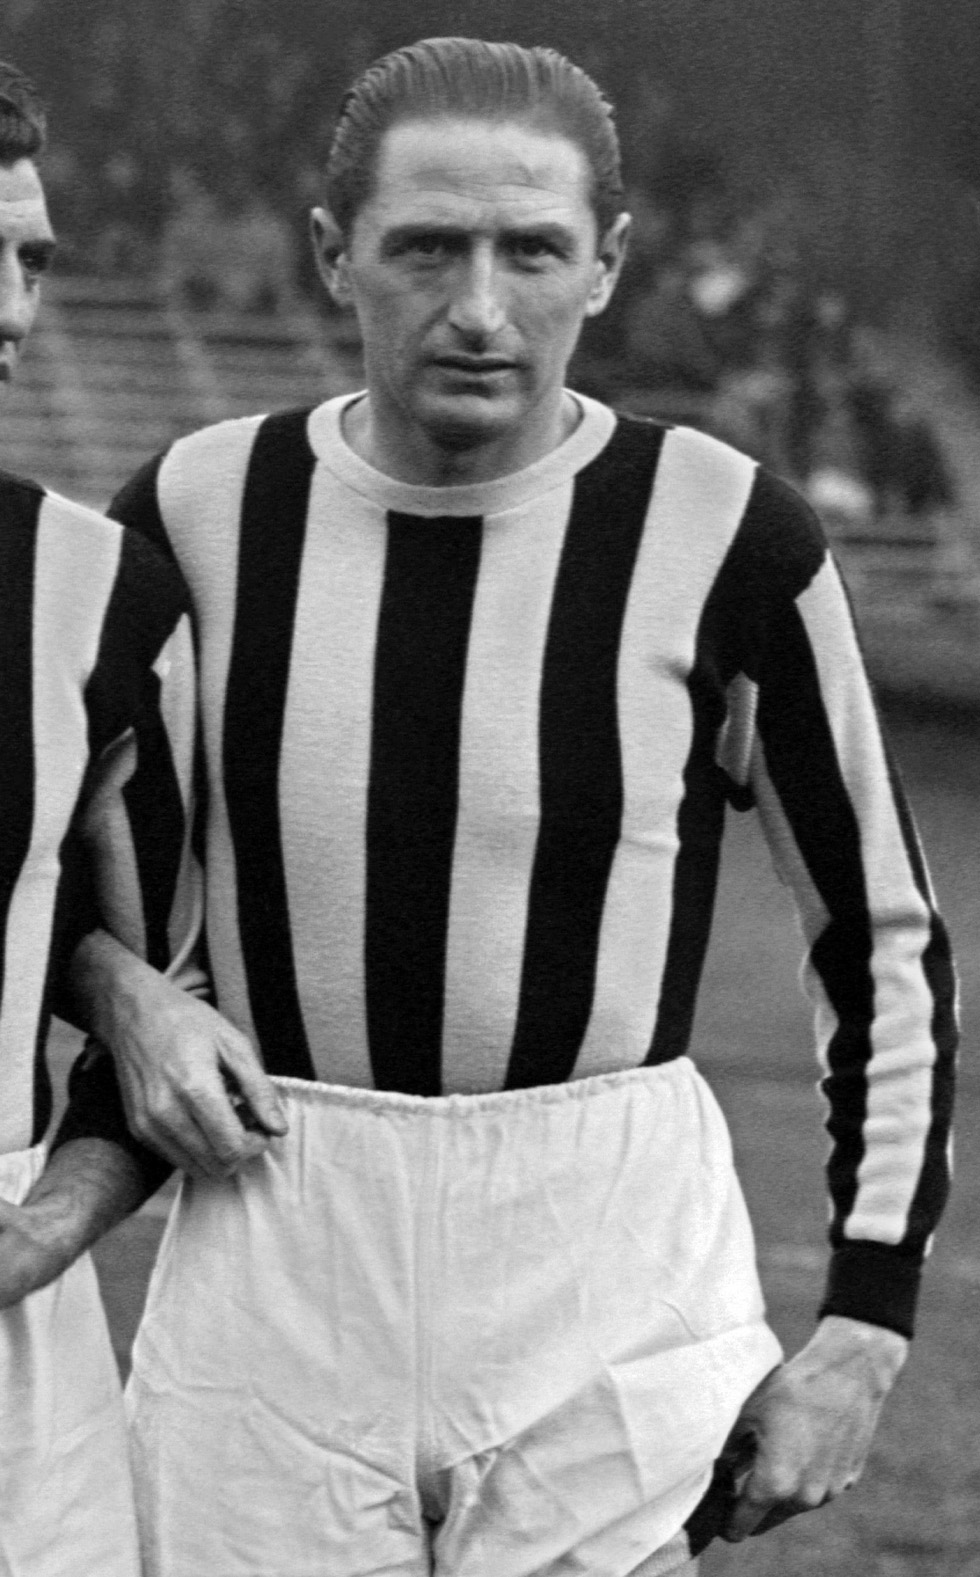 Portrait of Juventus Turin's forward Silvio Piola